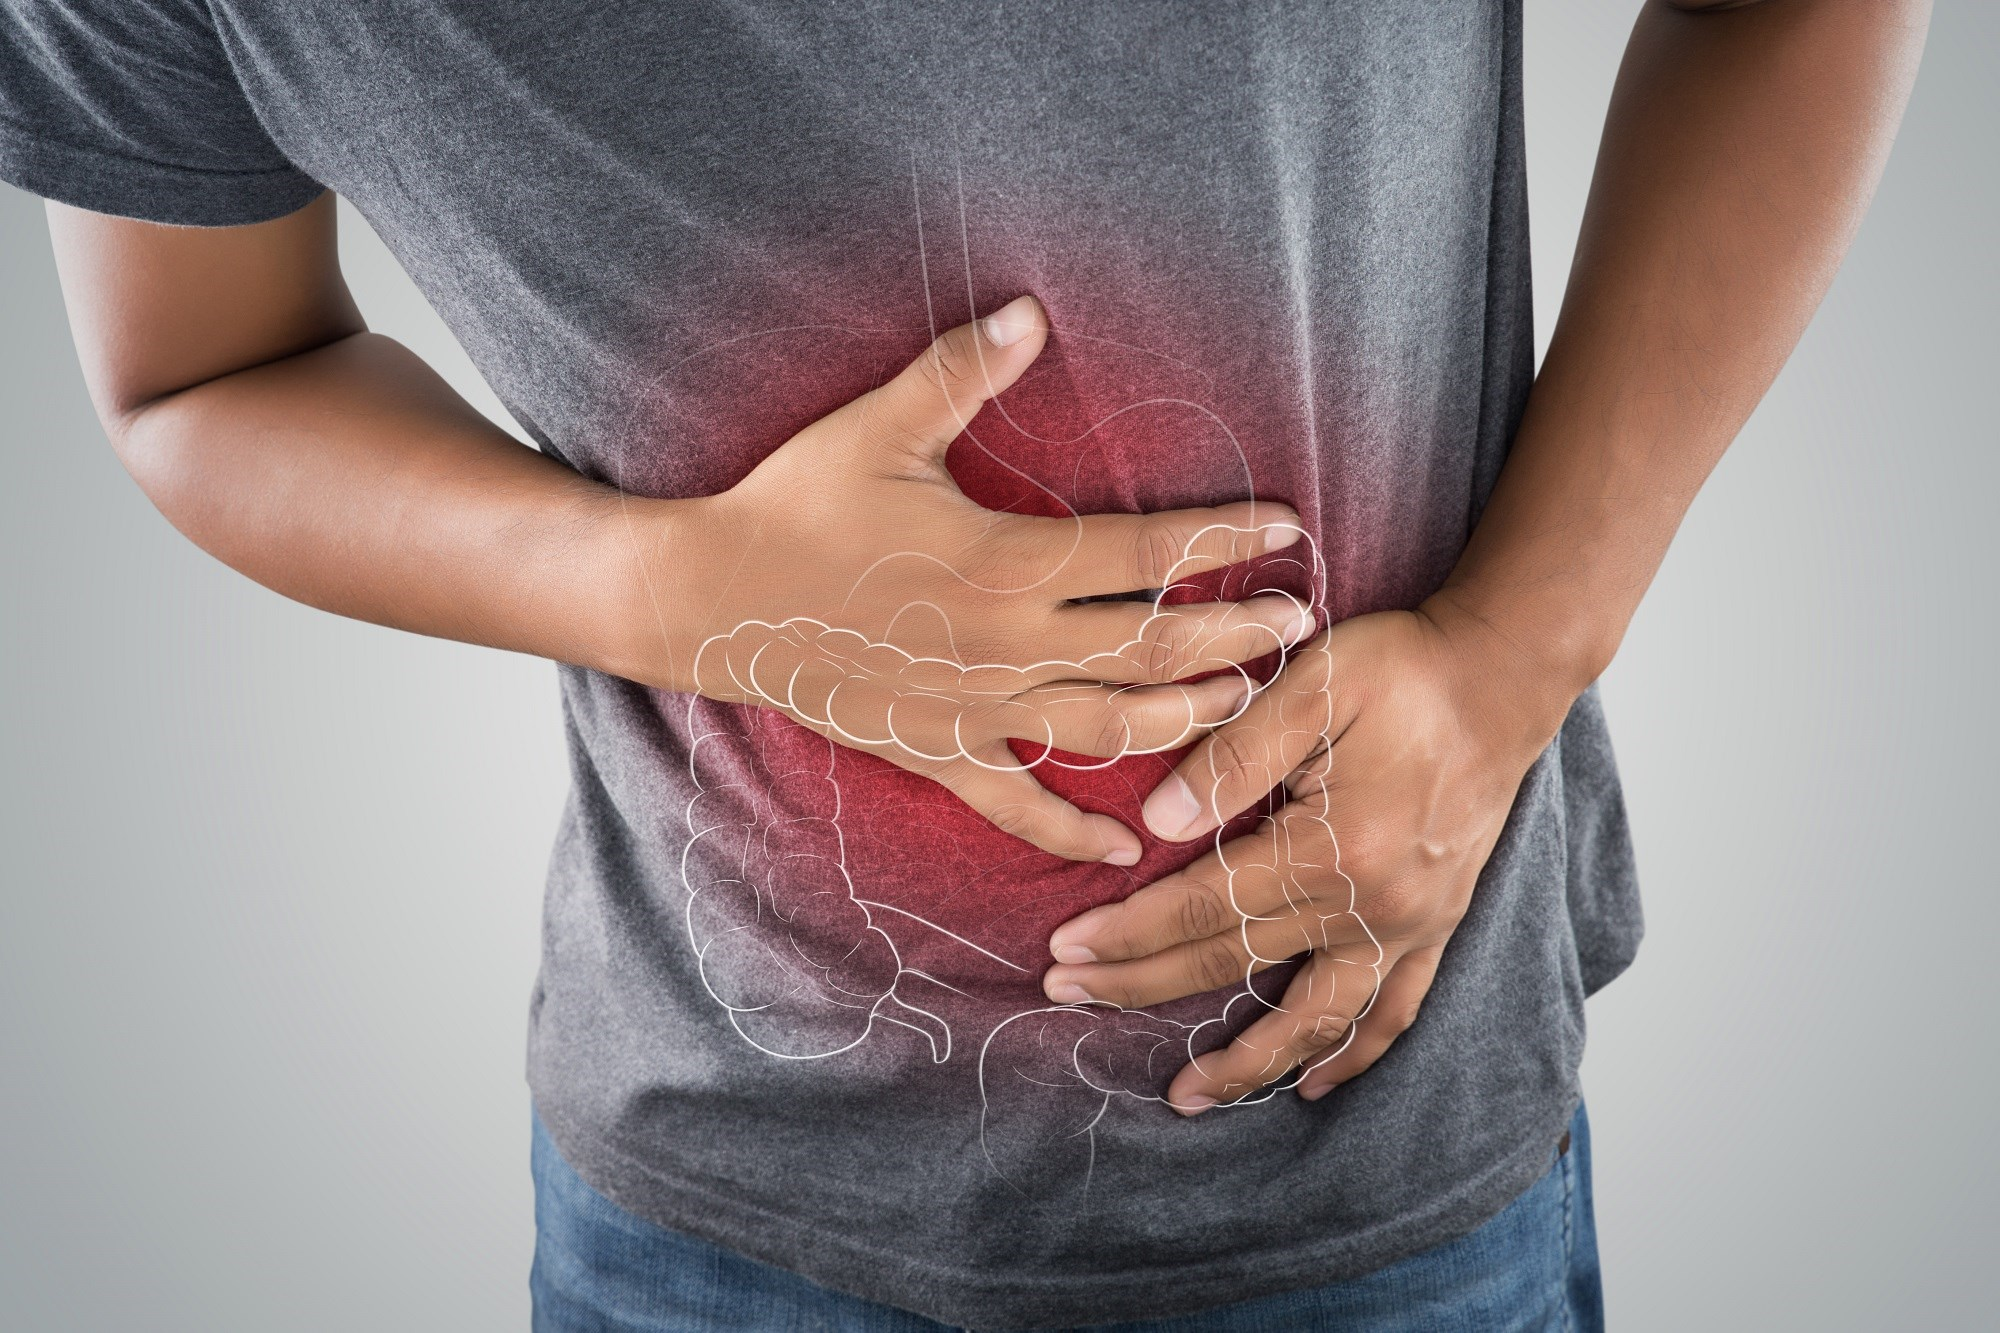 Numerous gastrointestinal pathologies are associated with McCune-Albright syndrome.